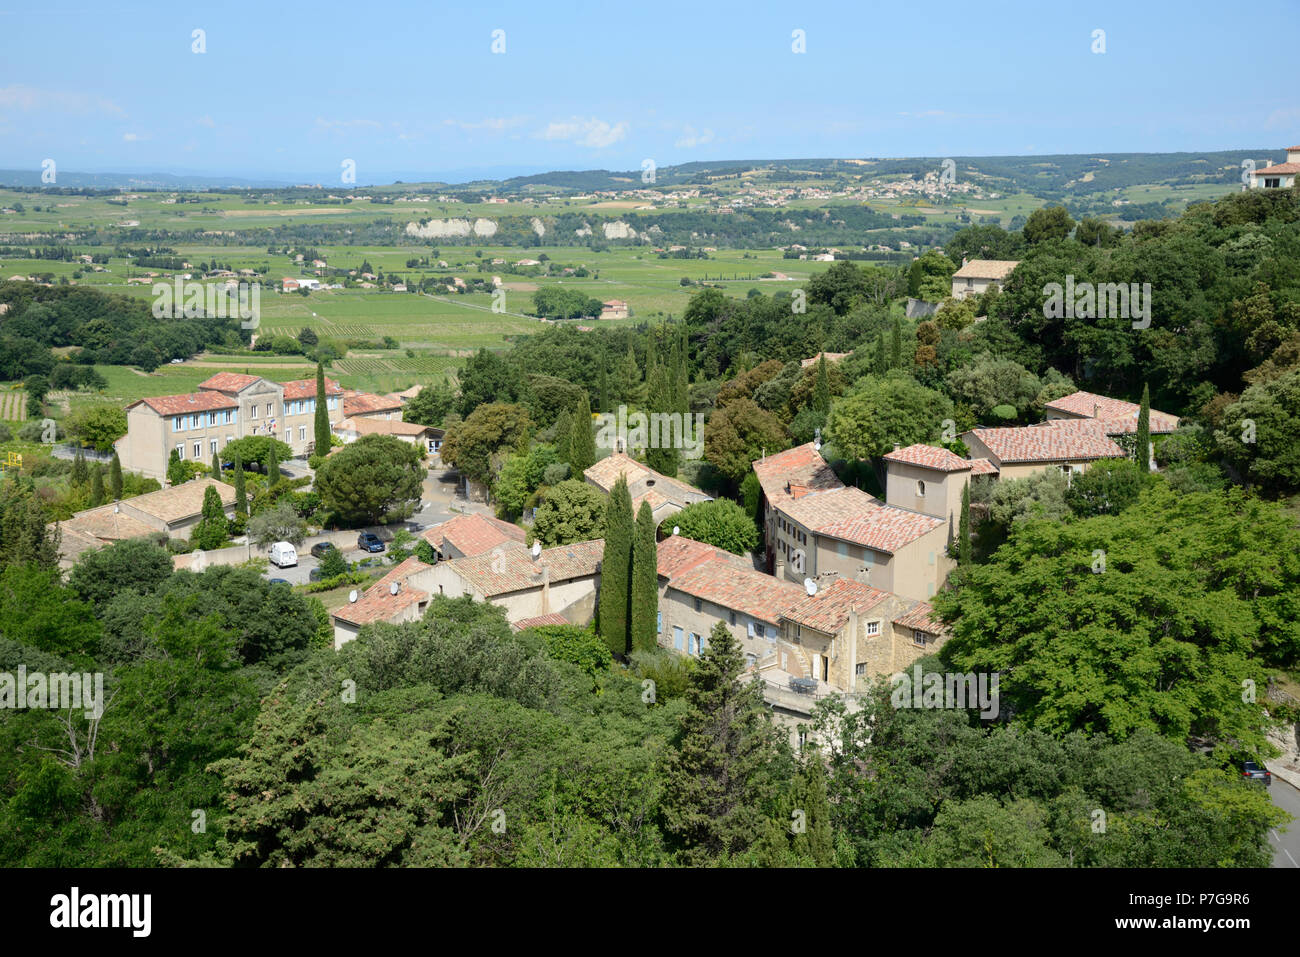 View over the Village of Séguret with Vineyards of the Côtes-du-Rhône Villages Vaucluse Provence France - Stock Image